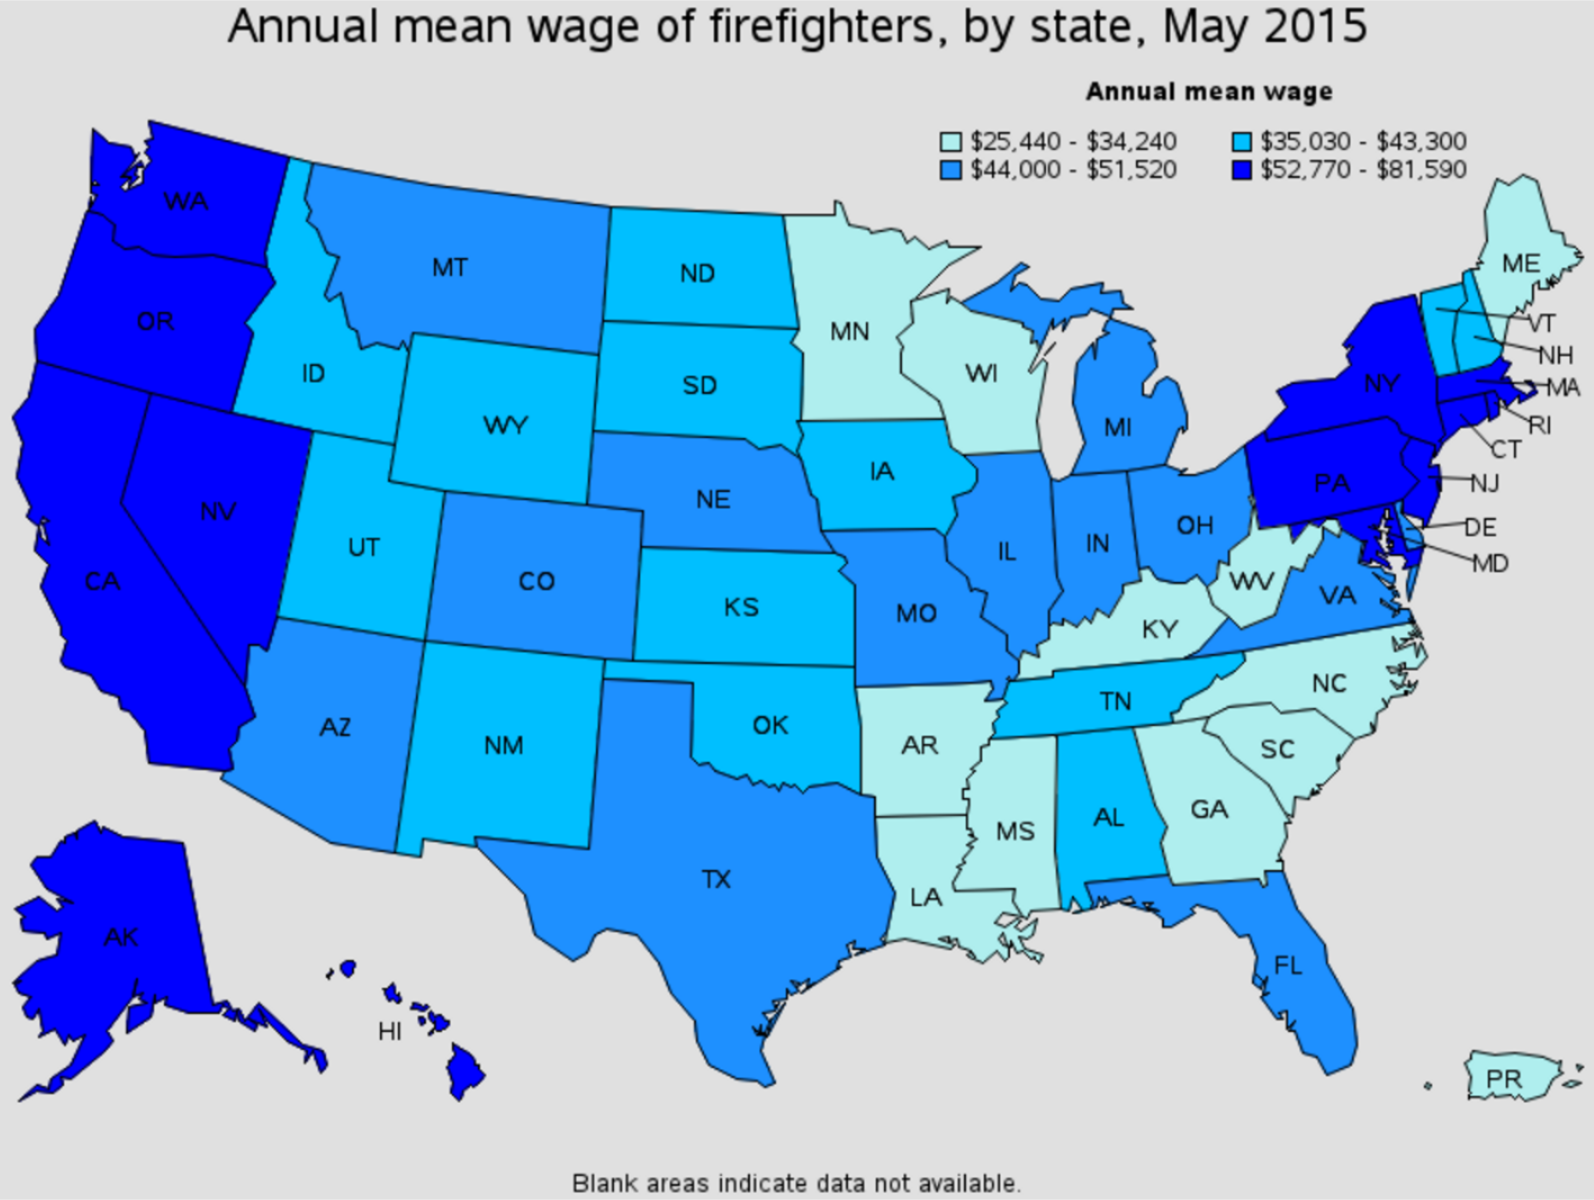 firefighter average salary by state Retsof New York